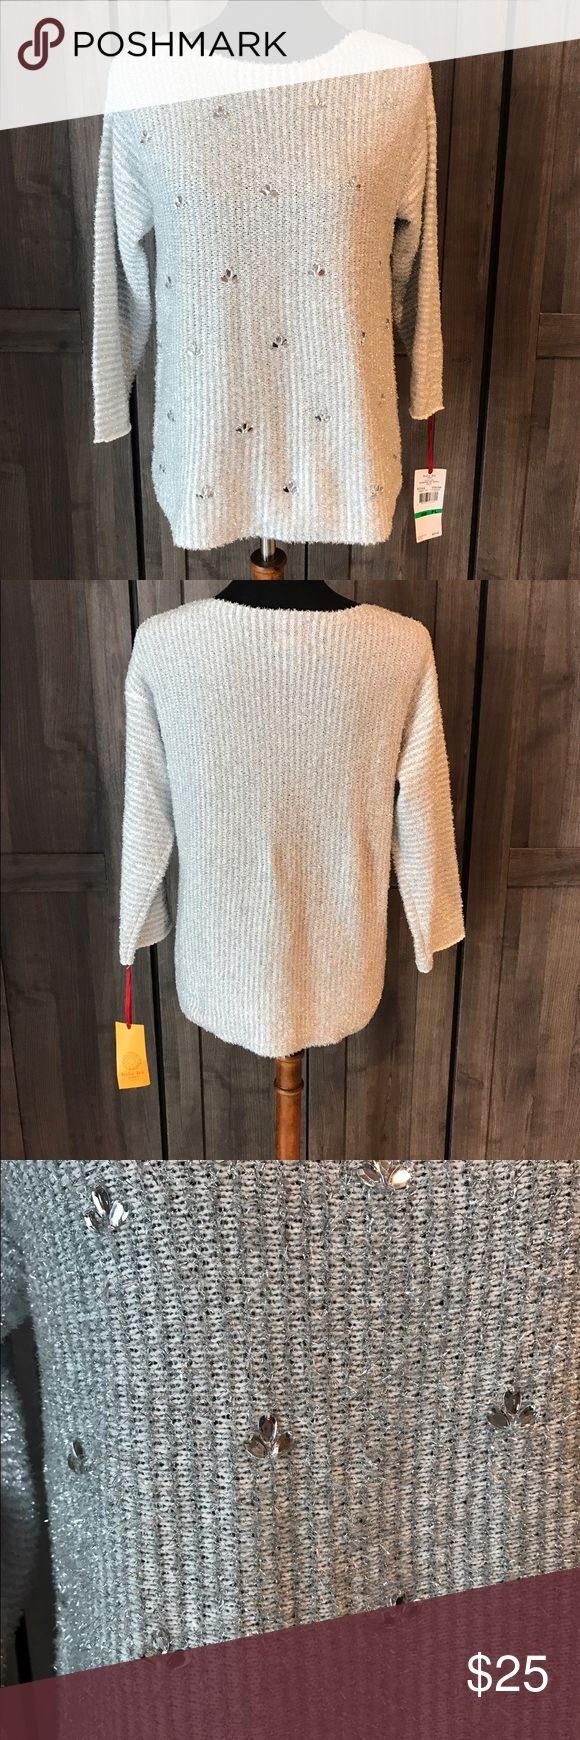 NWT $59 Ruby Rd petite sweater Super cute sweater. New with tags. $59. Silver and white. Size PL Sweaters